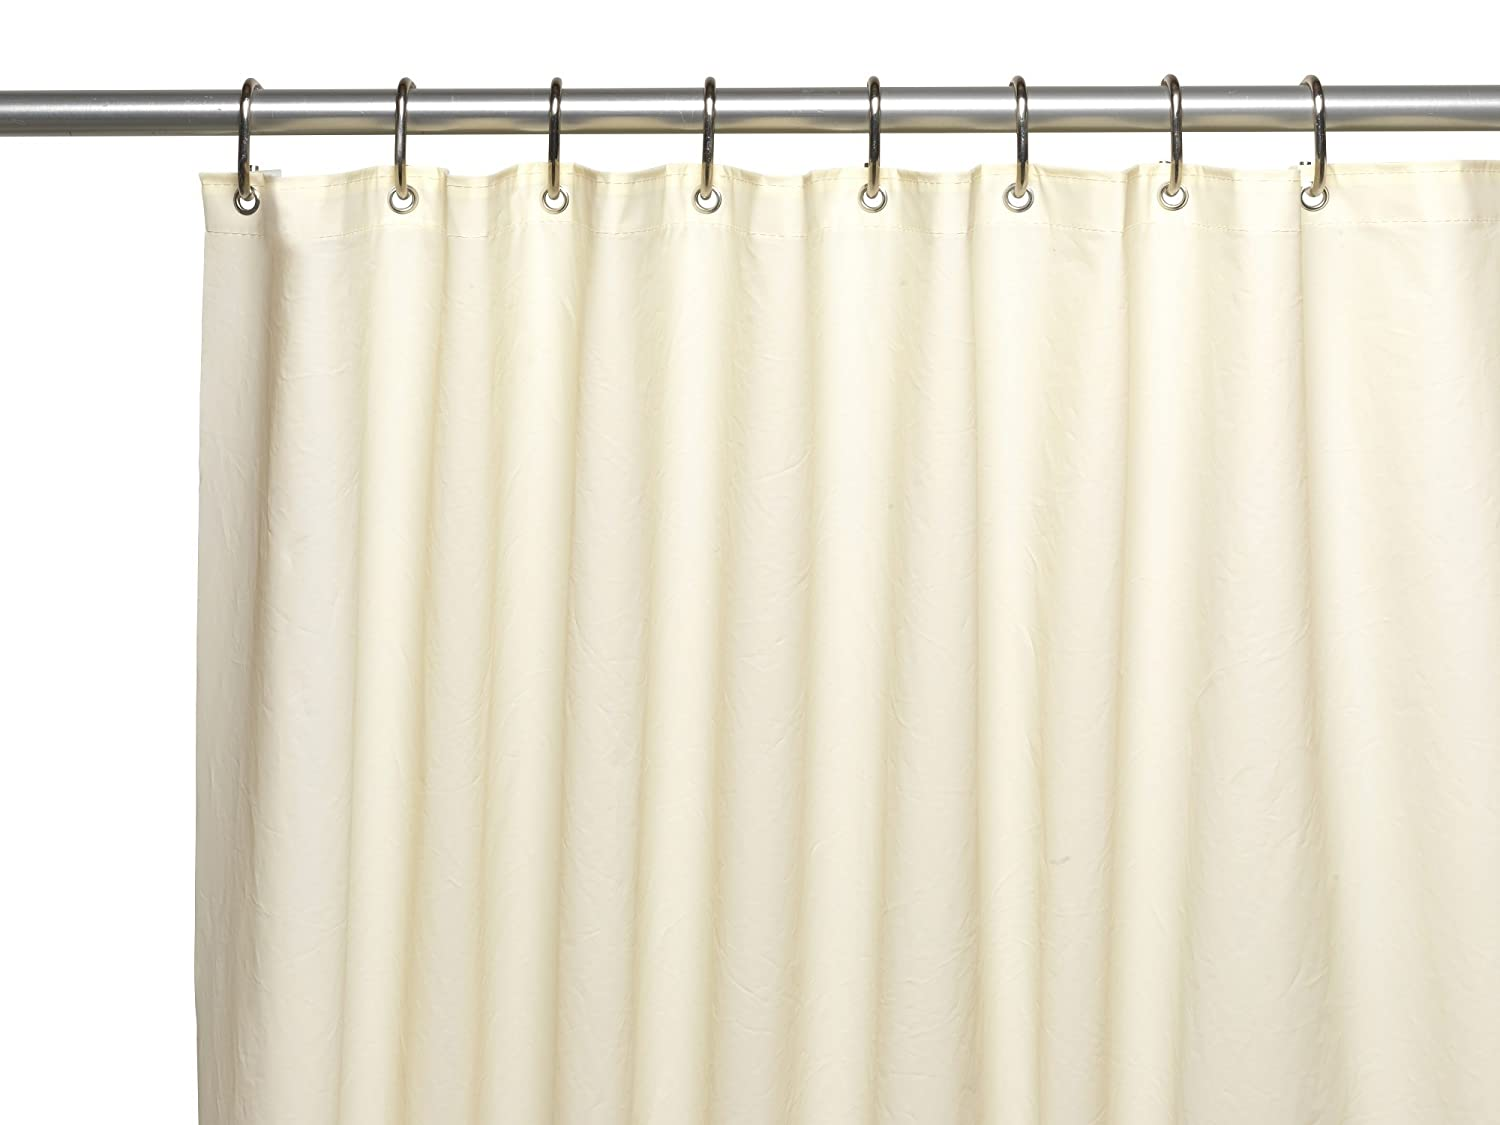 Amazon Royal Bath Extra Heavy 10 Gauge PEVA Non Toxic Shower Curtain Liner With Metal Grommets 72 X